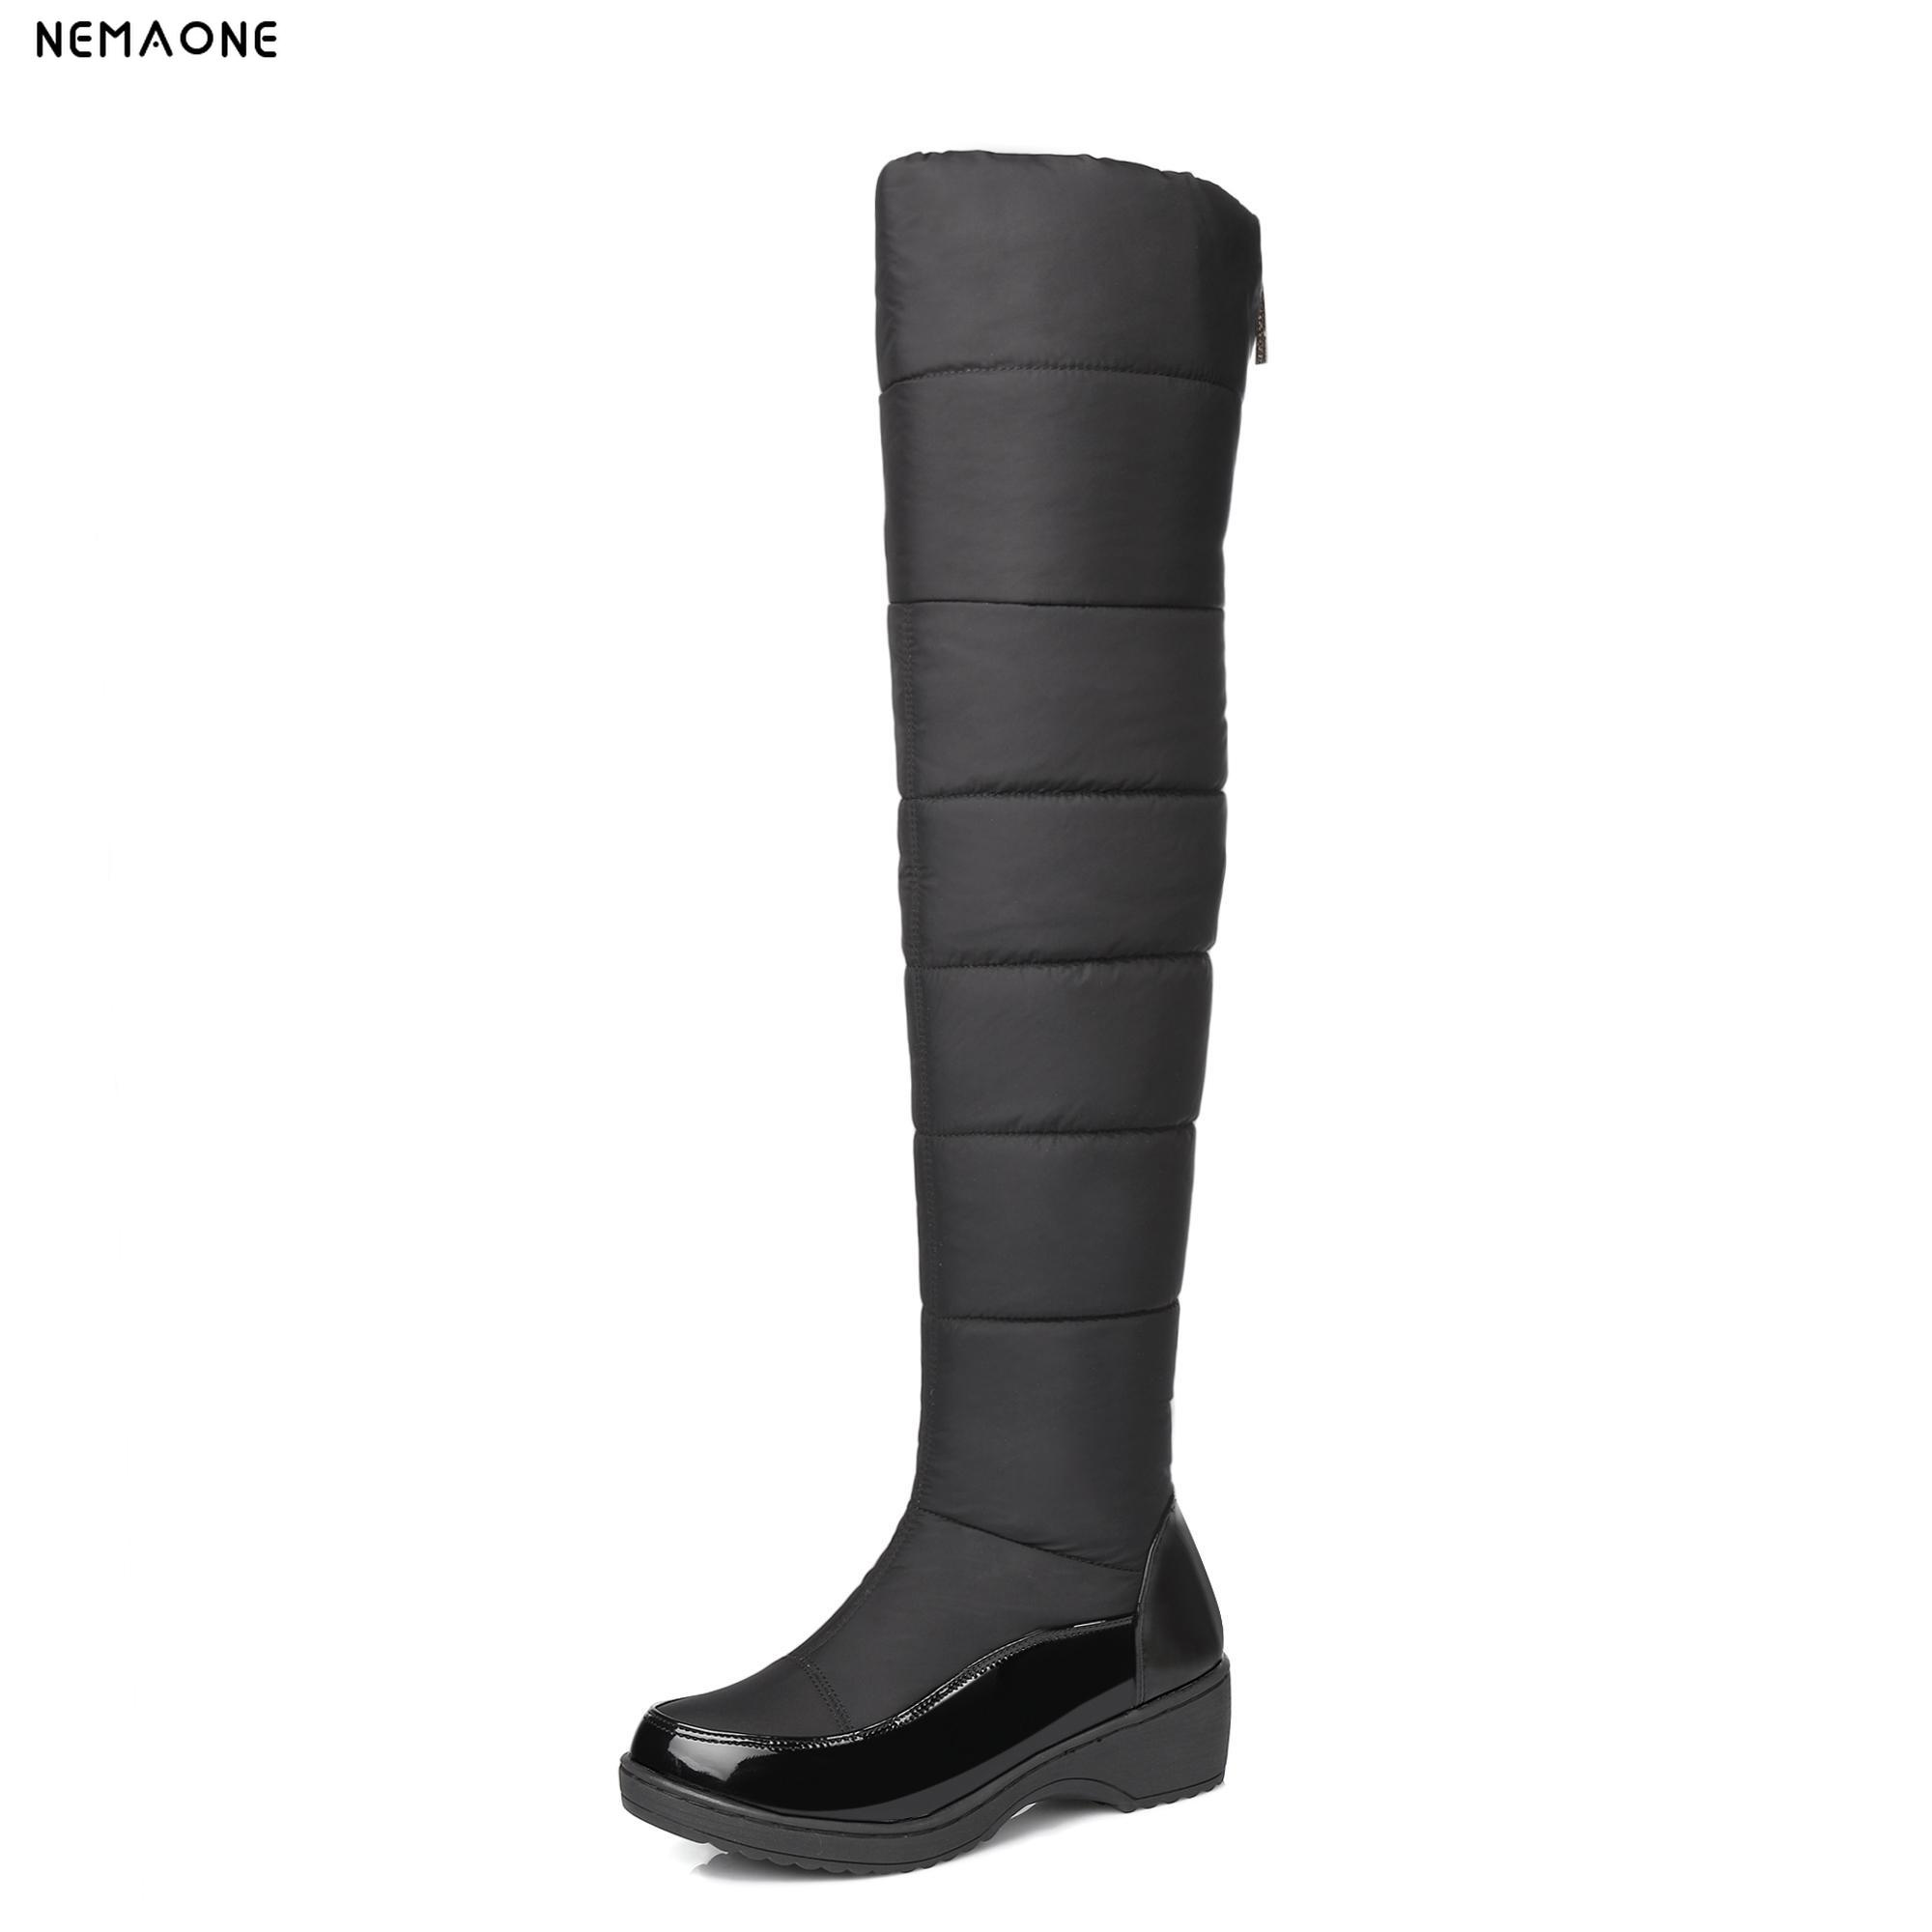 NEMAONE 2017 Winter Autumn New Feathers Knight Knee Boots Women Fashion Slip-On Height Increasing shoes  boots big size 34-40